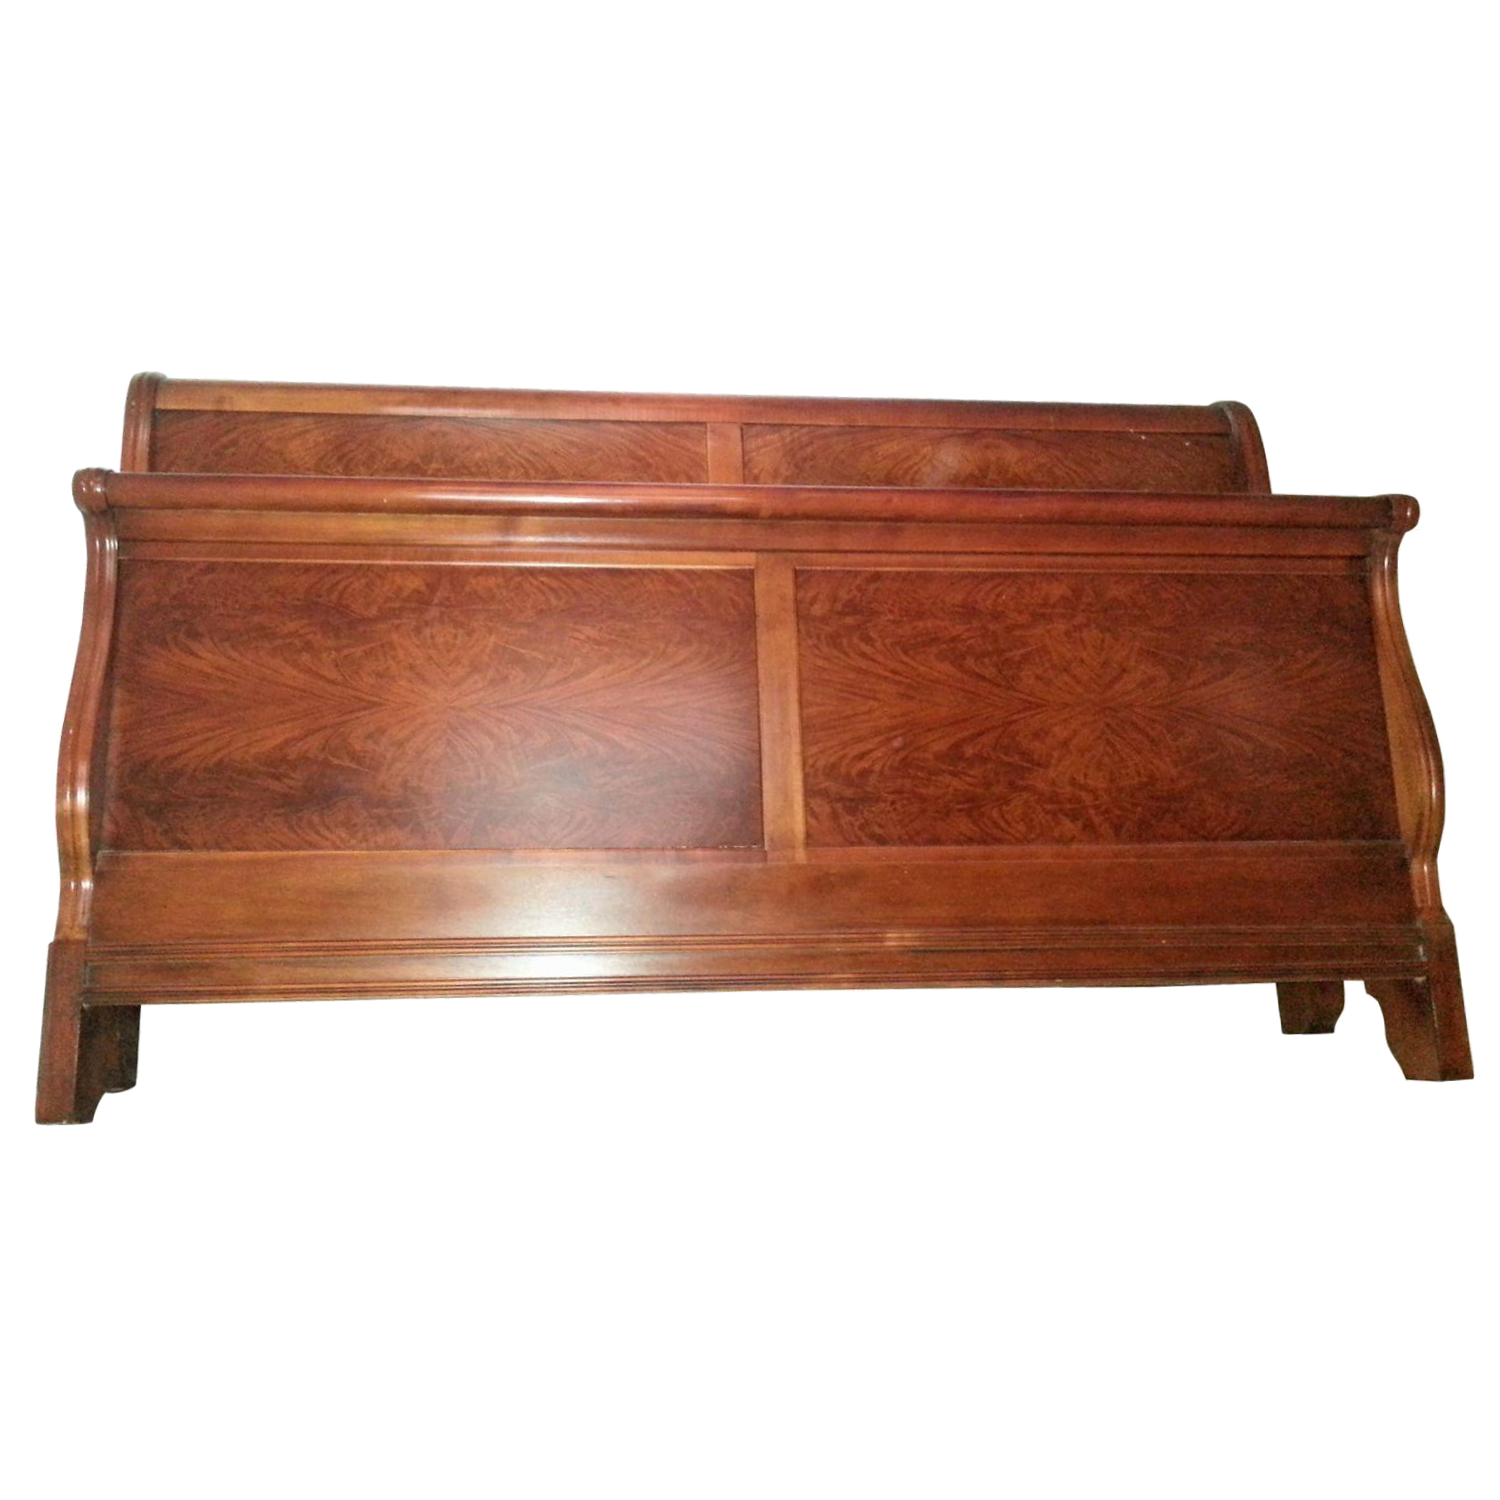 drexel mahogany california king bed frame chairish